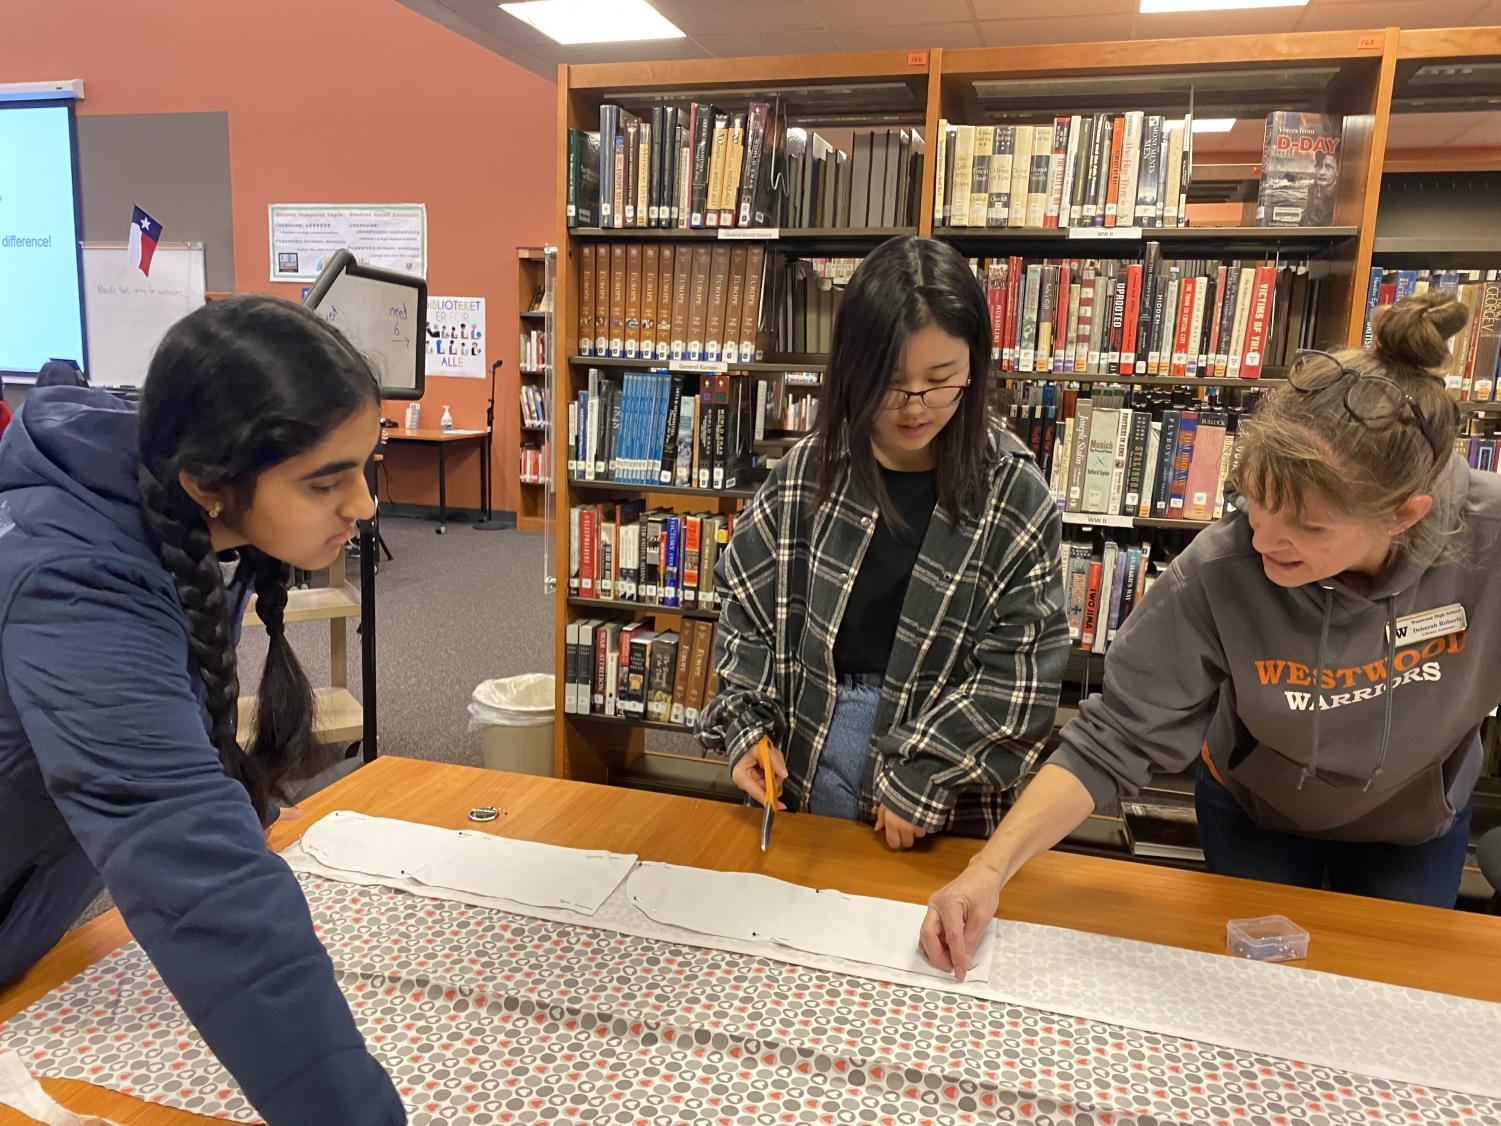 Librarian+Ms.+Deborah+Roberts+shows+students+how+to+measure+and+cut+the+fabric+at+the+beginning+of+the+session.